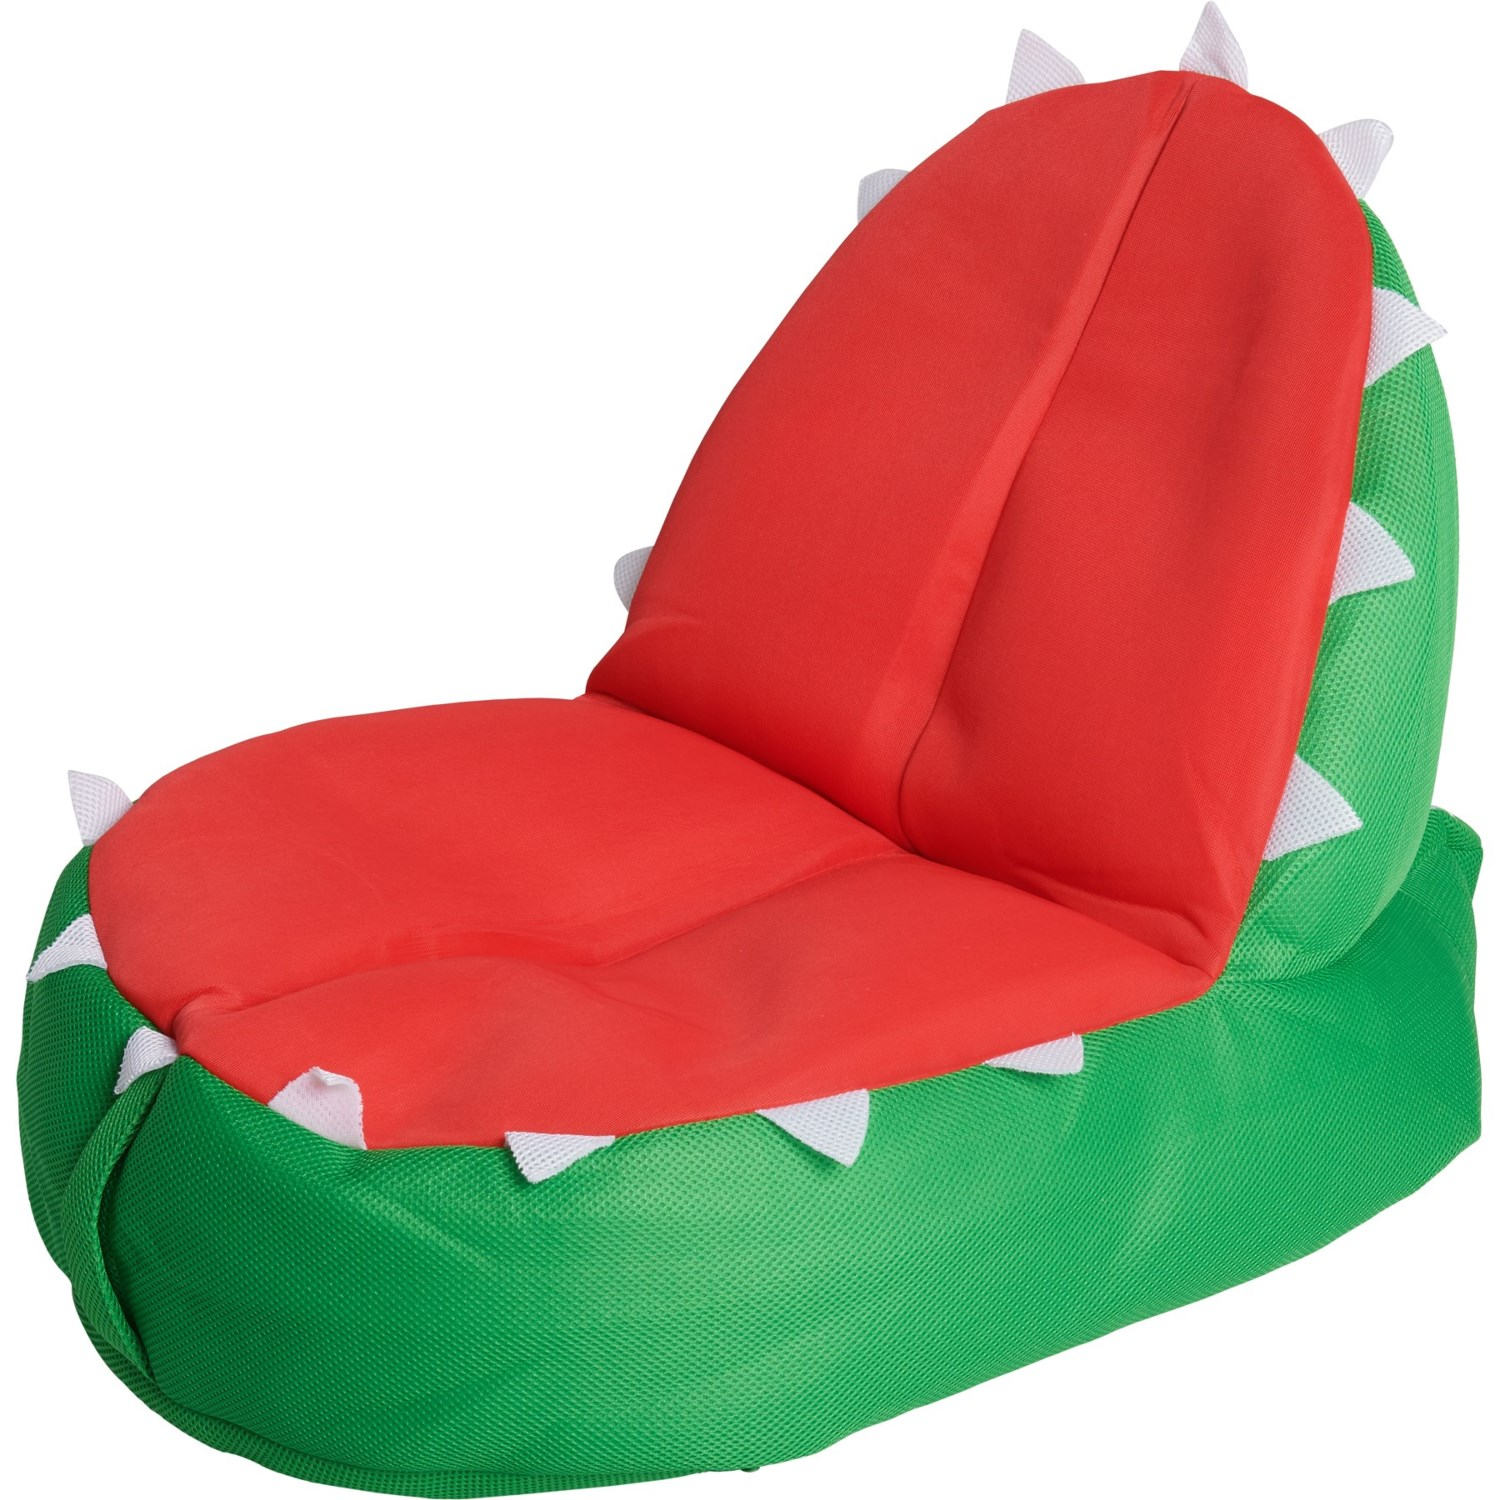 Prime Big Joe Alligator Chomper Bean Bag Chair Save 43 Caraccident5 Cool Chair Designs And Ideas Caraccident5Info